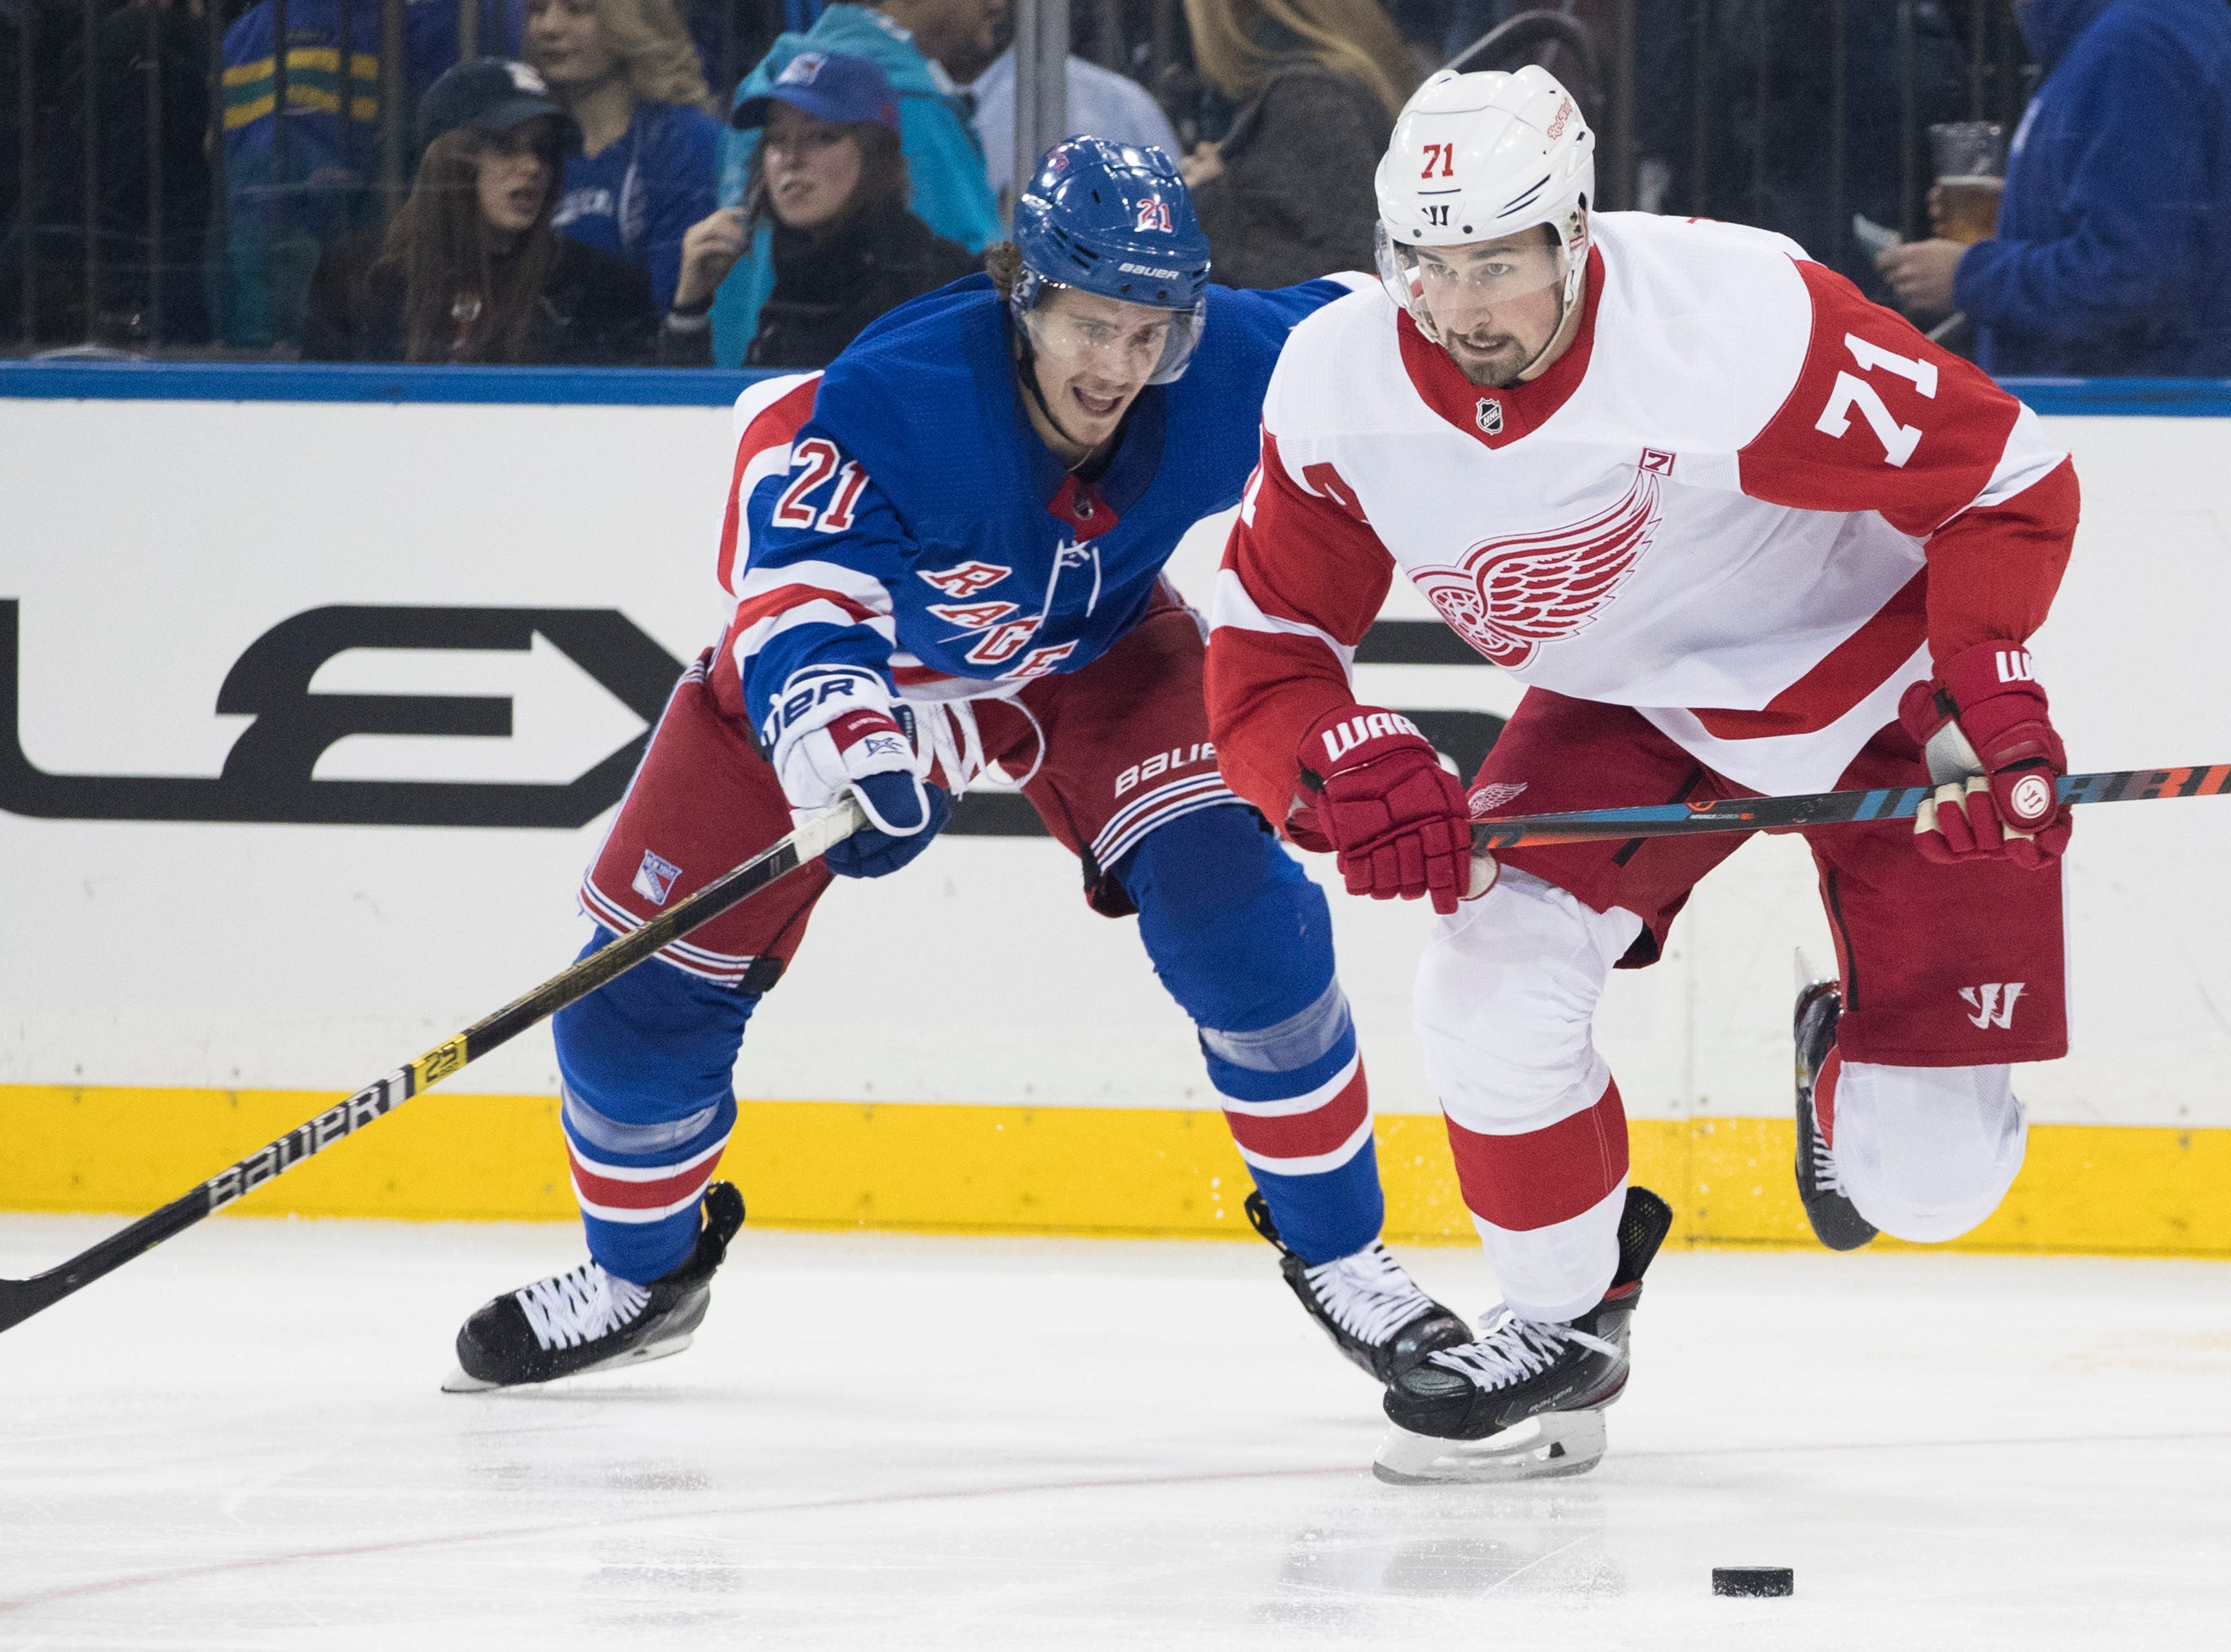 New York Rangers center Brett Howden (21) and Detroit Red Wings center Dylan Larkin (71) fights for the puck during the second period.